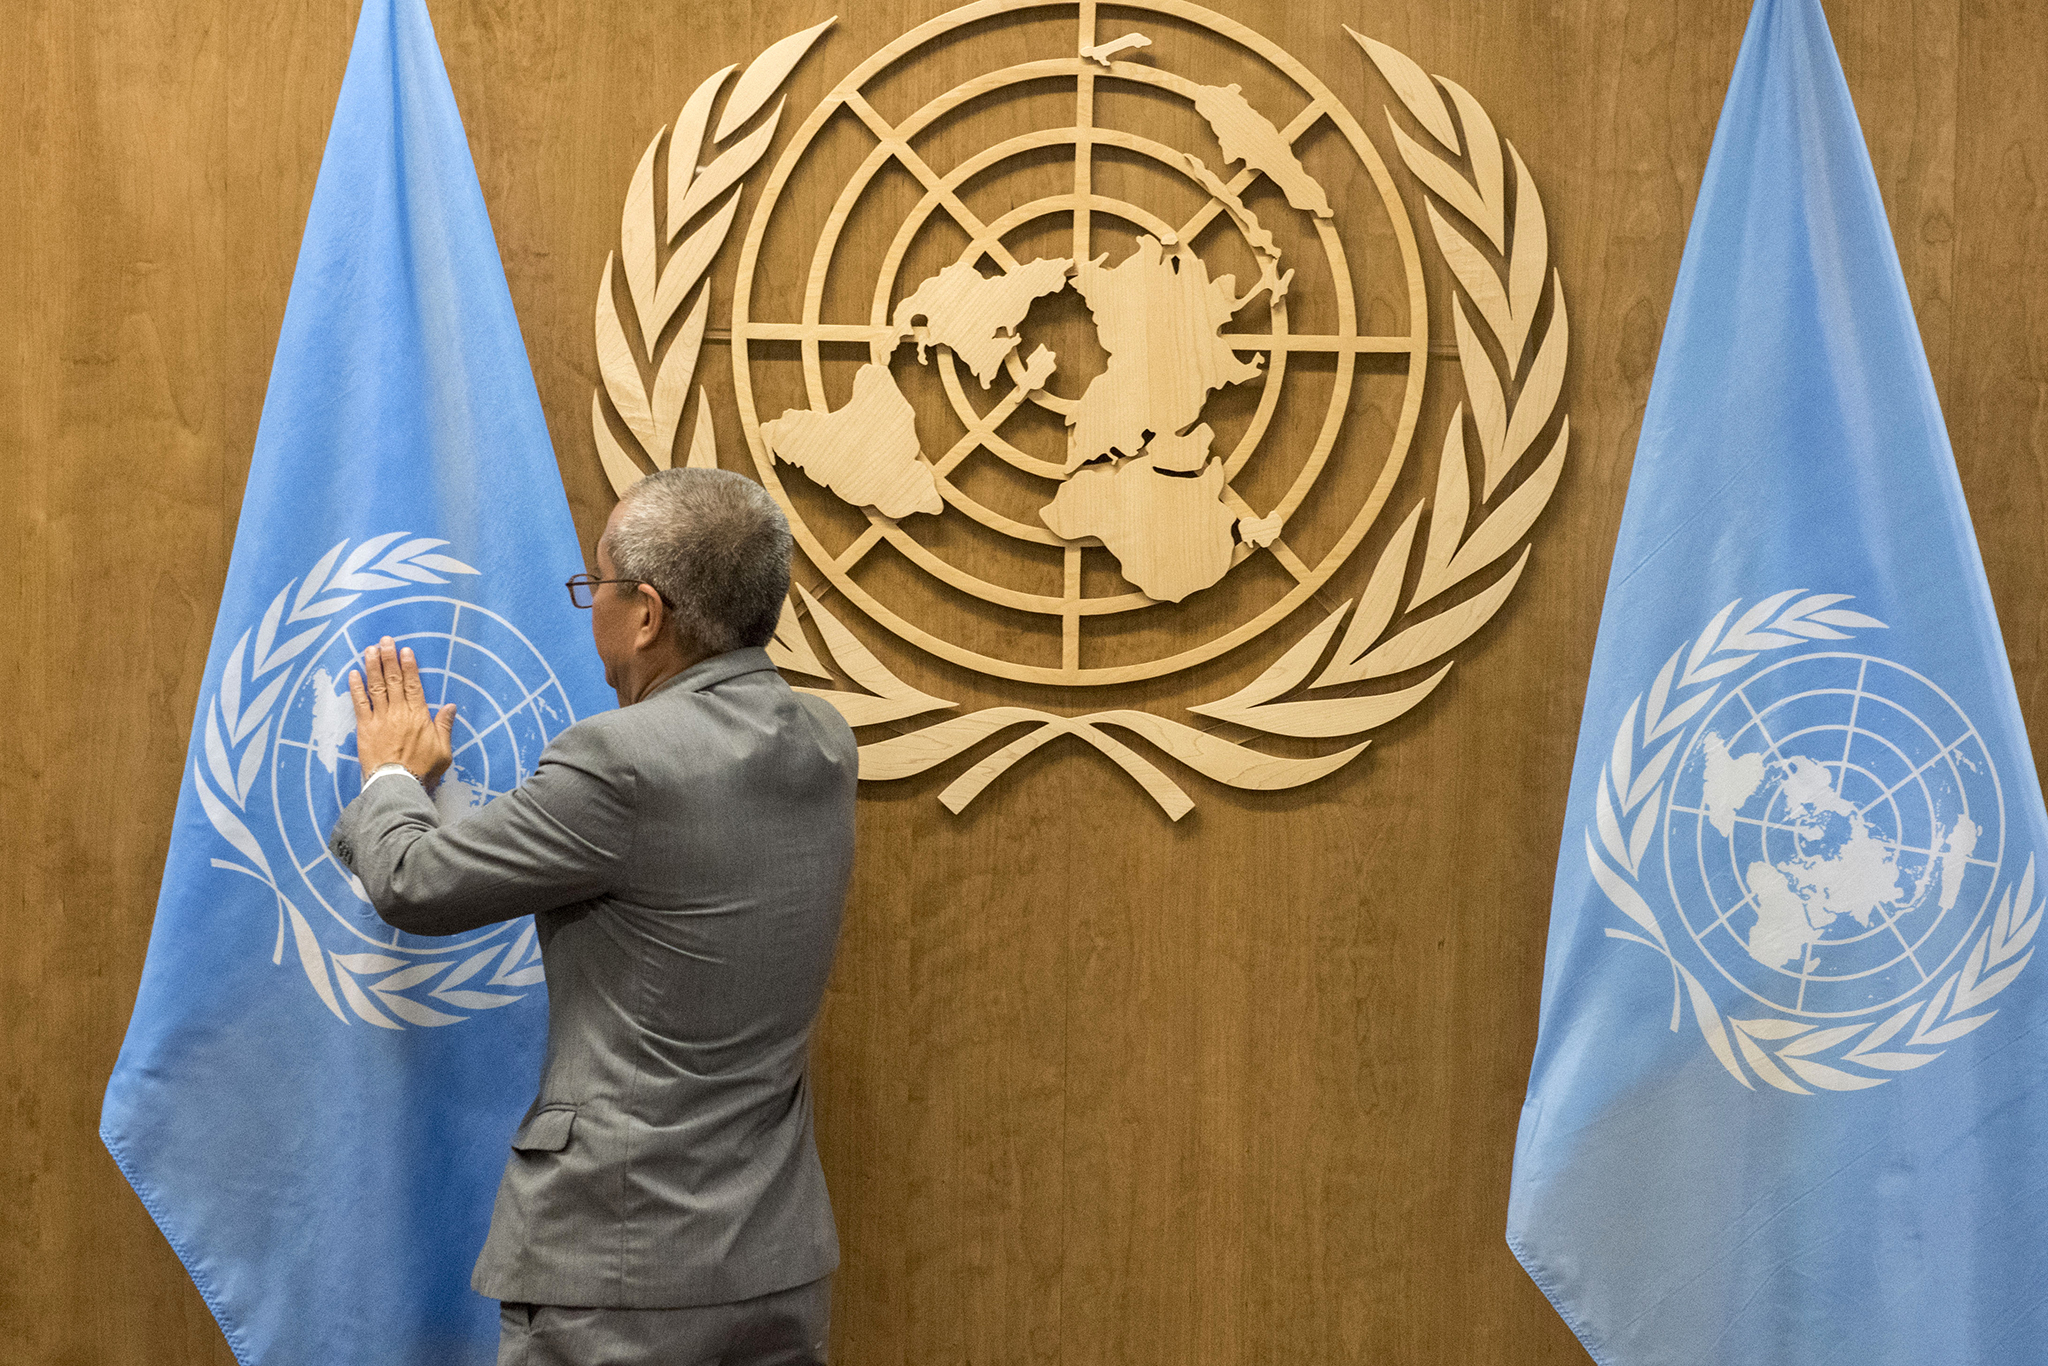 Should the EU have a seat on the UN Security Council?